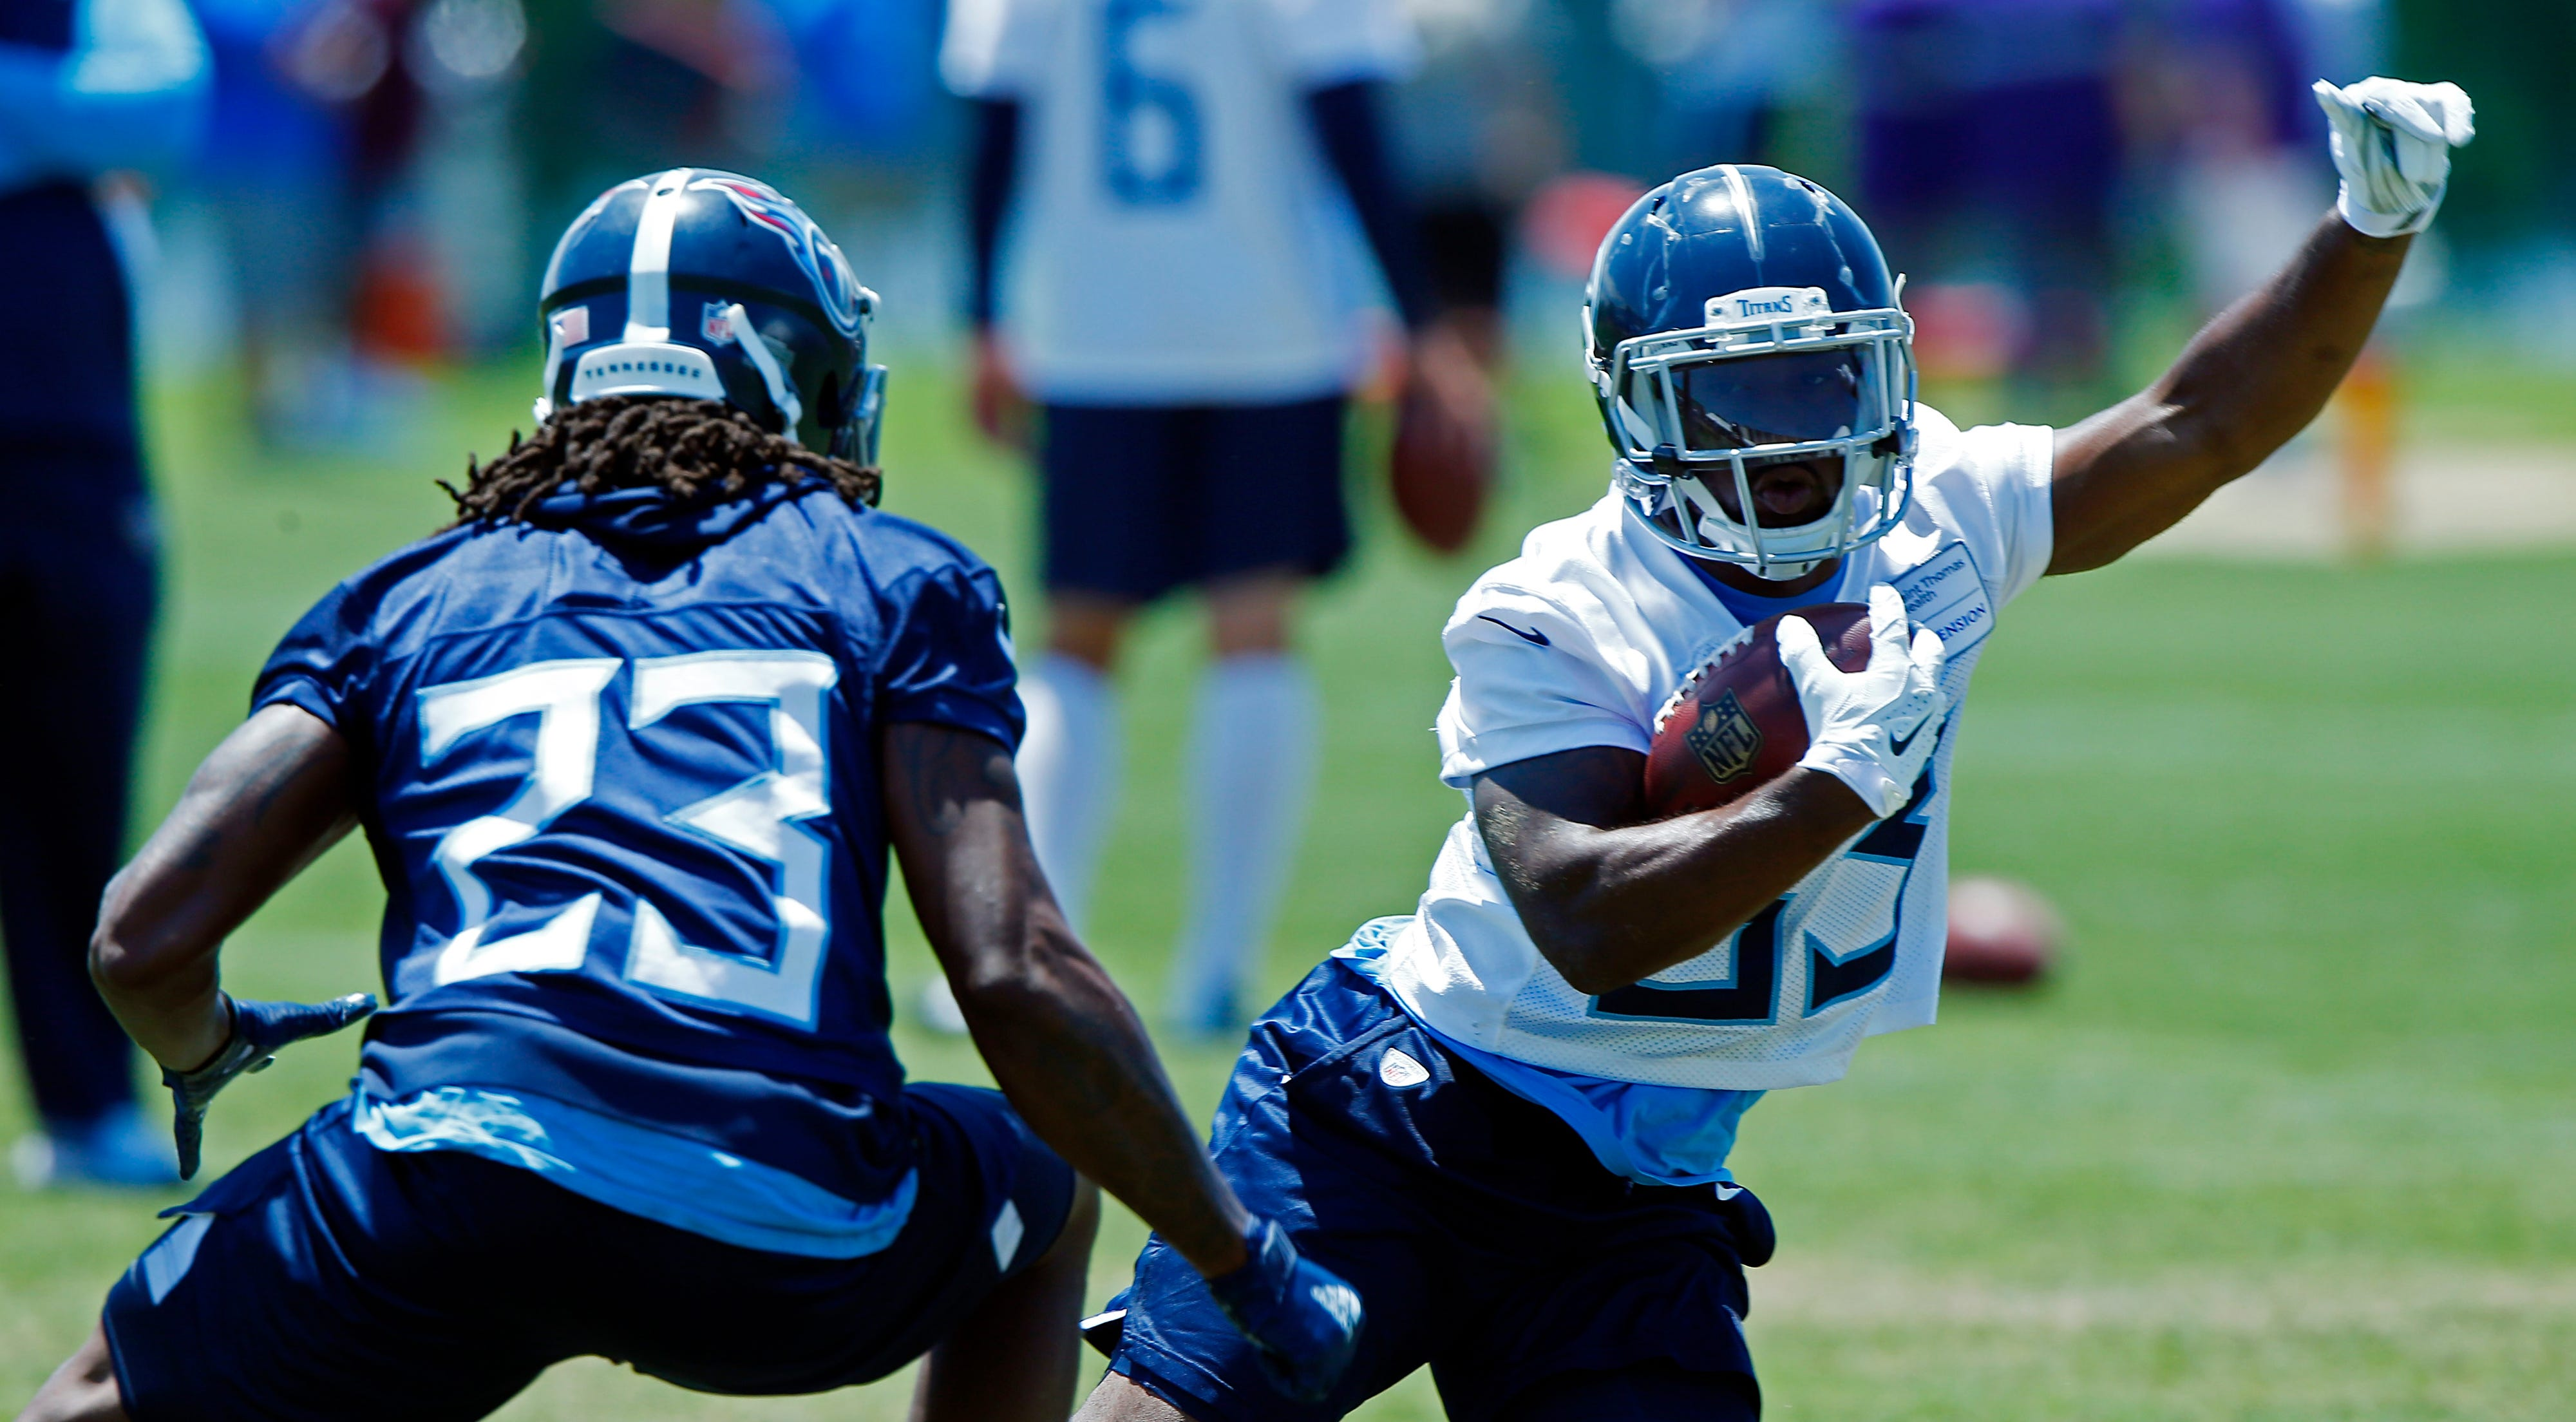 Titans: Derrick Henry, Dion Lewis both starters; offense 'all starts with our run game'